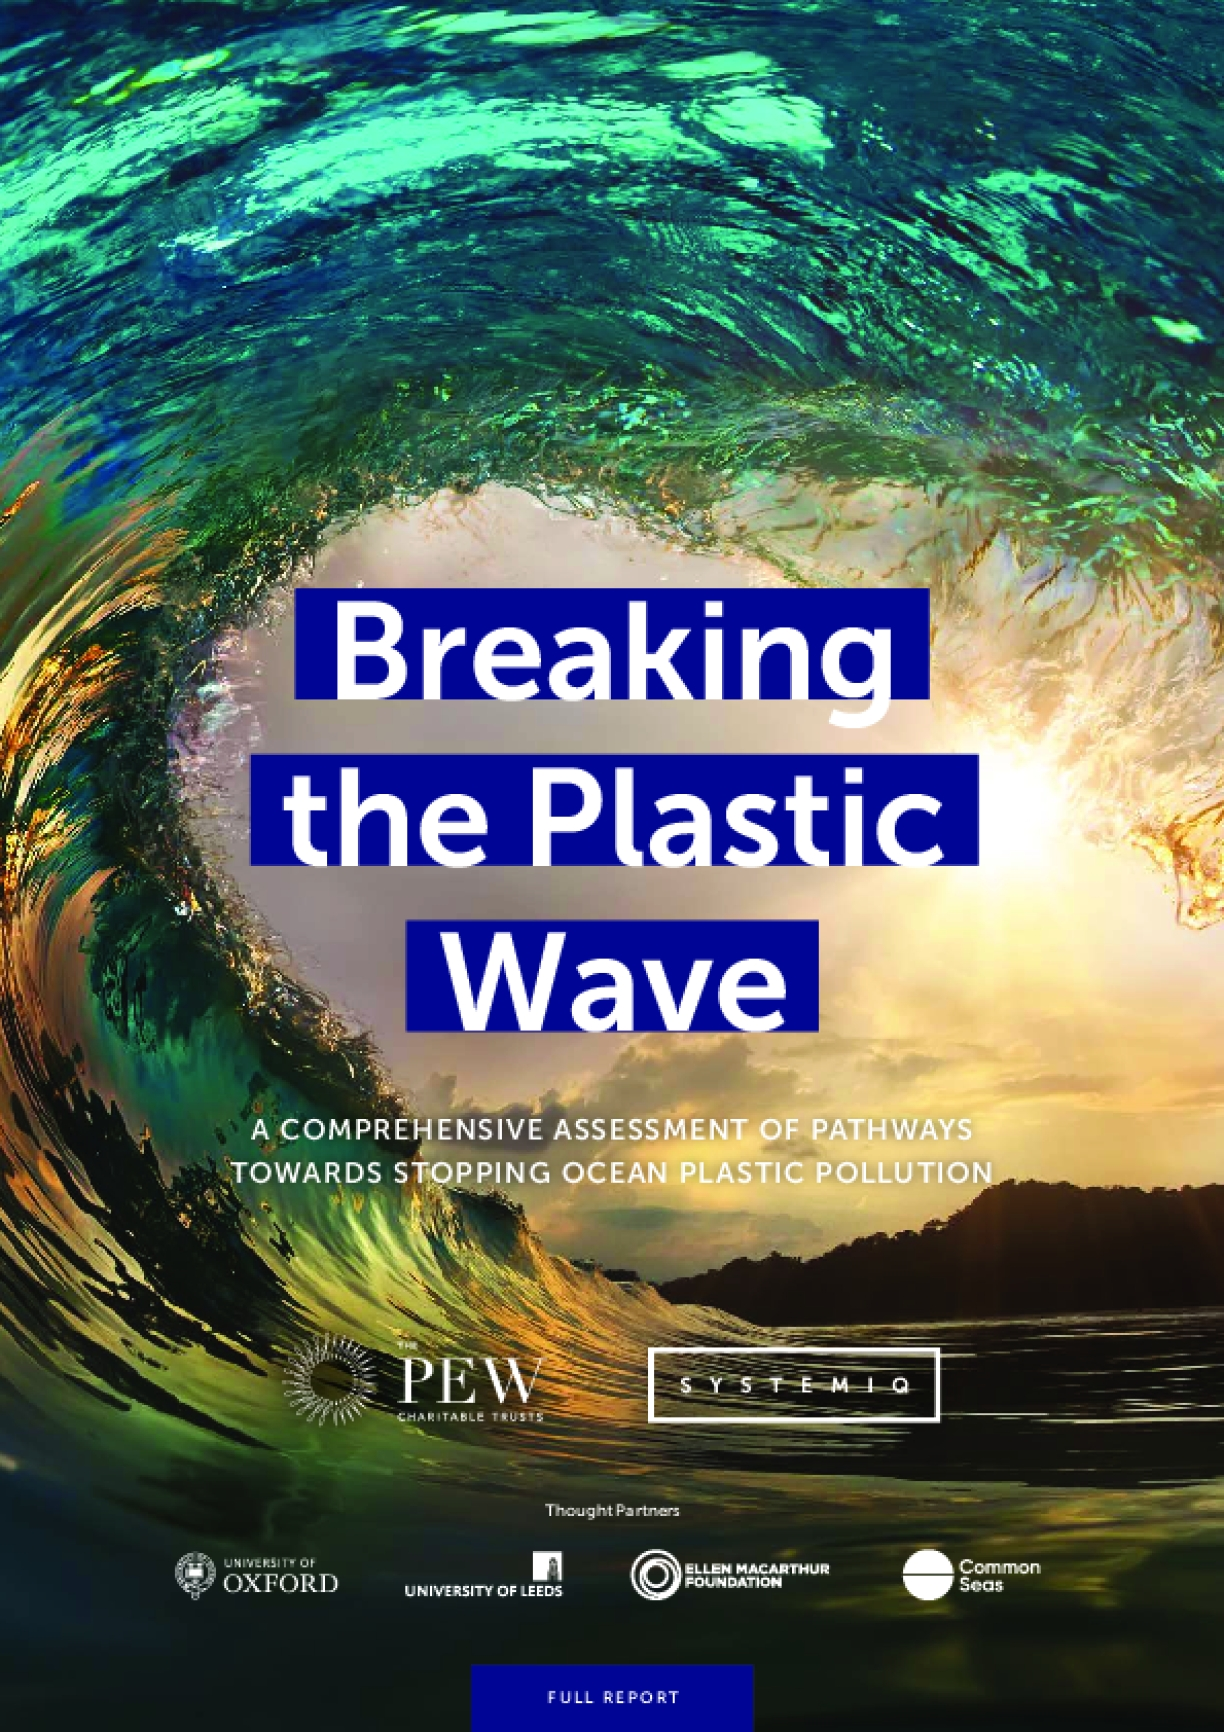 Breaking the Plastic Wave: A Comprehensive Assessment Of Pathways Towards Stopping Ocean Plastic Pollution